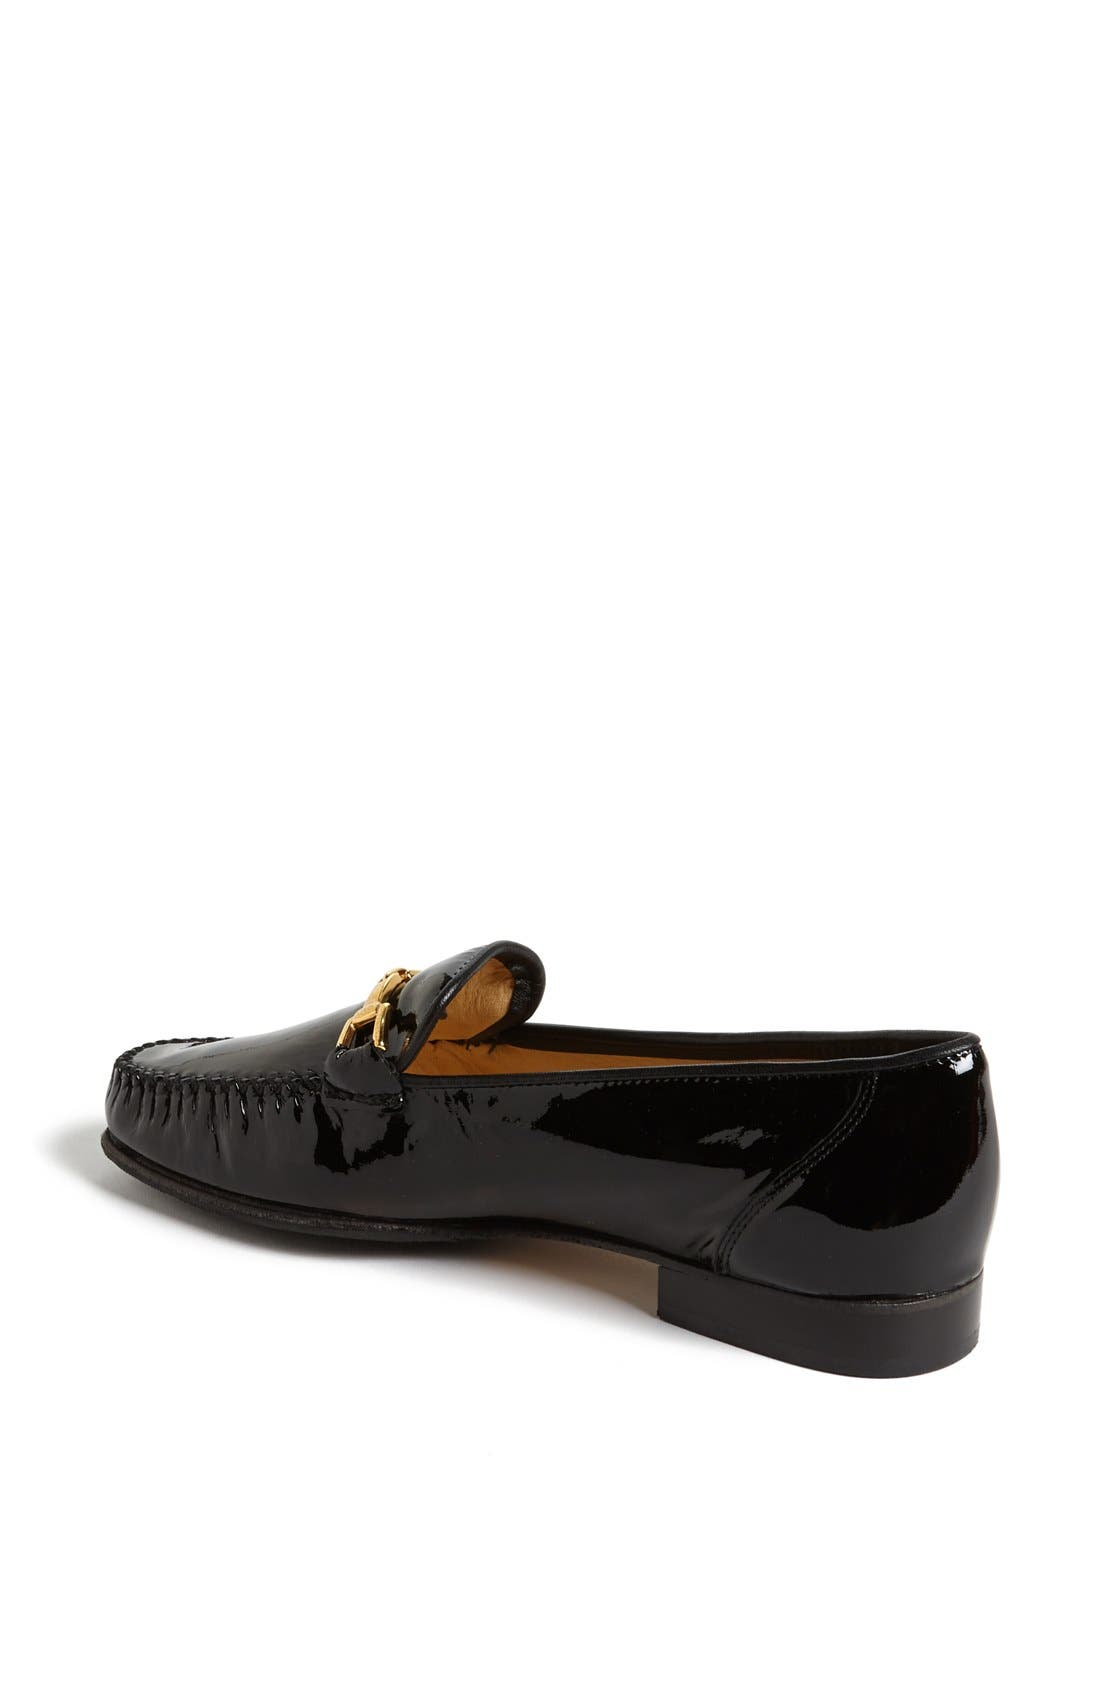 Alternate Image 2  - Carvela Kurt Geiger 'Mariner' Patent Leather Flat